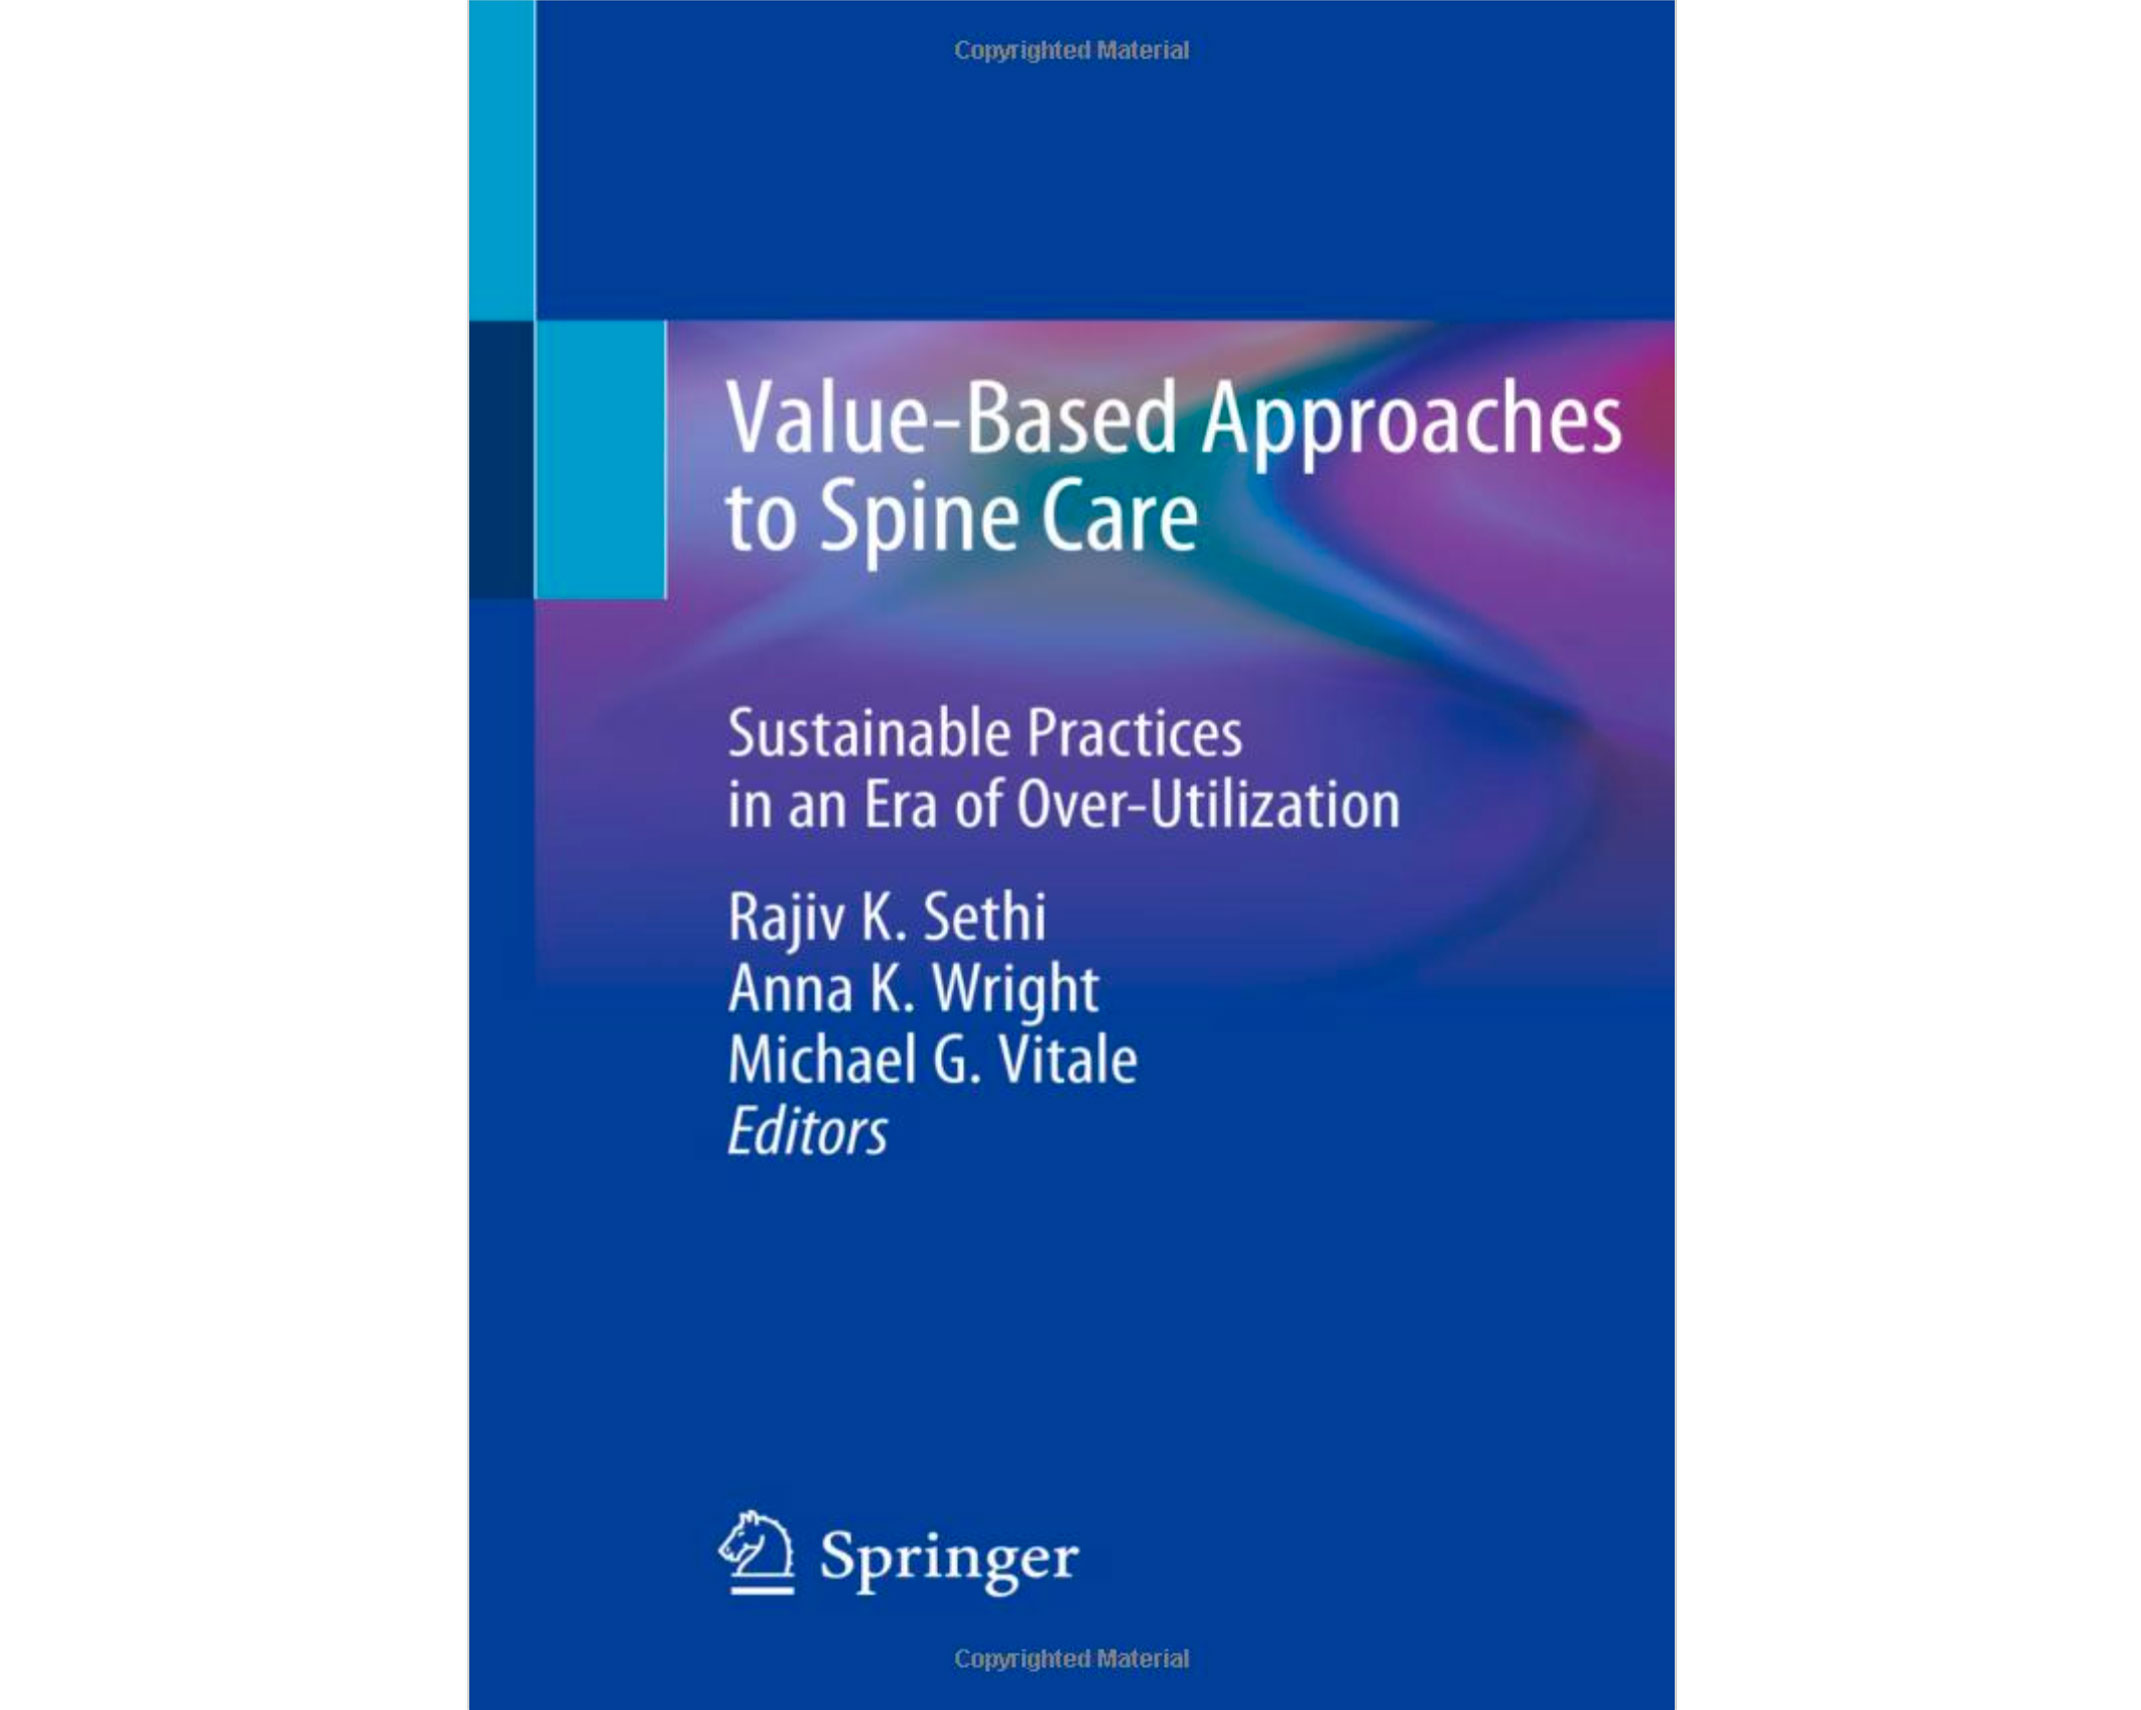 Value-Based Approaches to Spine Care-book-cover